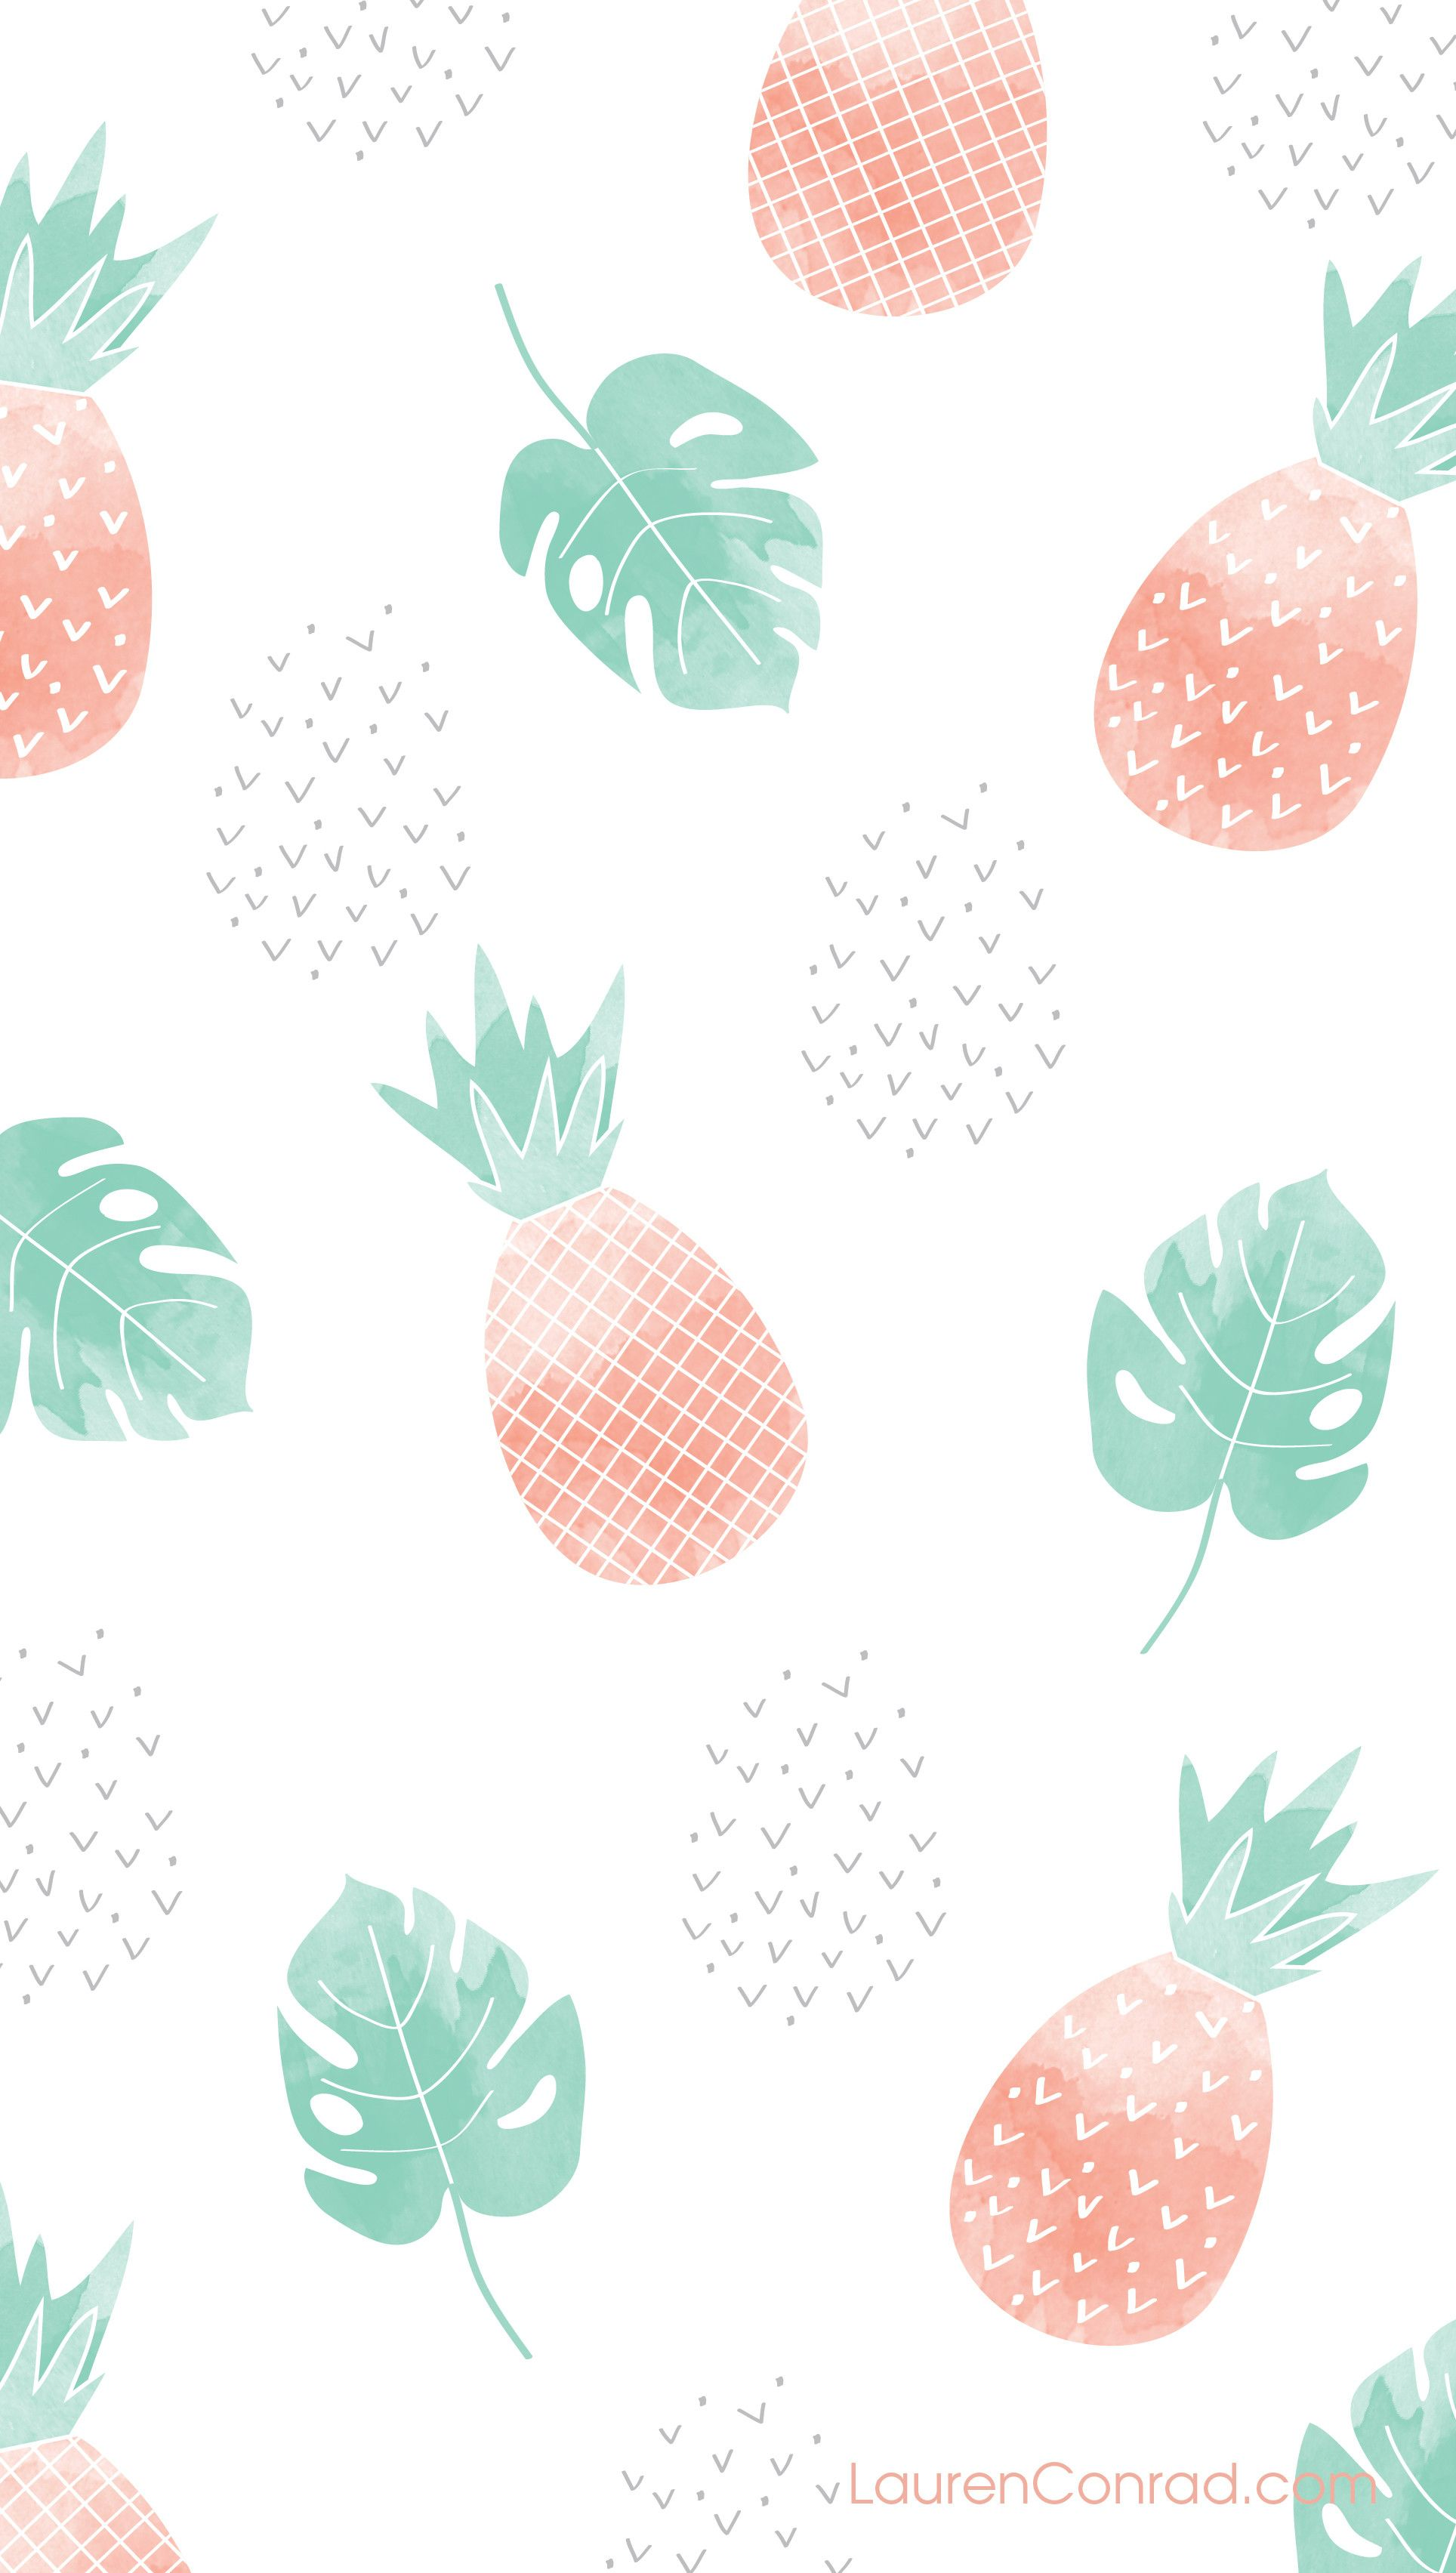 Image Result For Cute Iphone Wallpaper Pineapple Wallpaper Pineapple Phone Wallpaper Tech Wallpapers